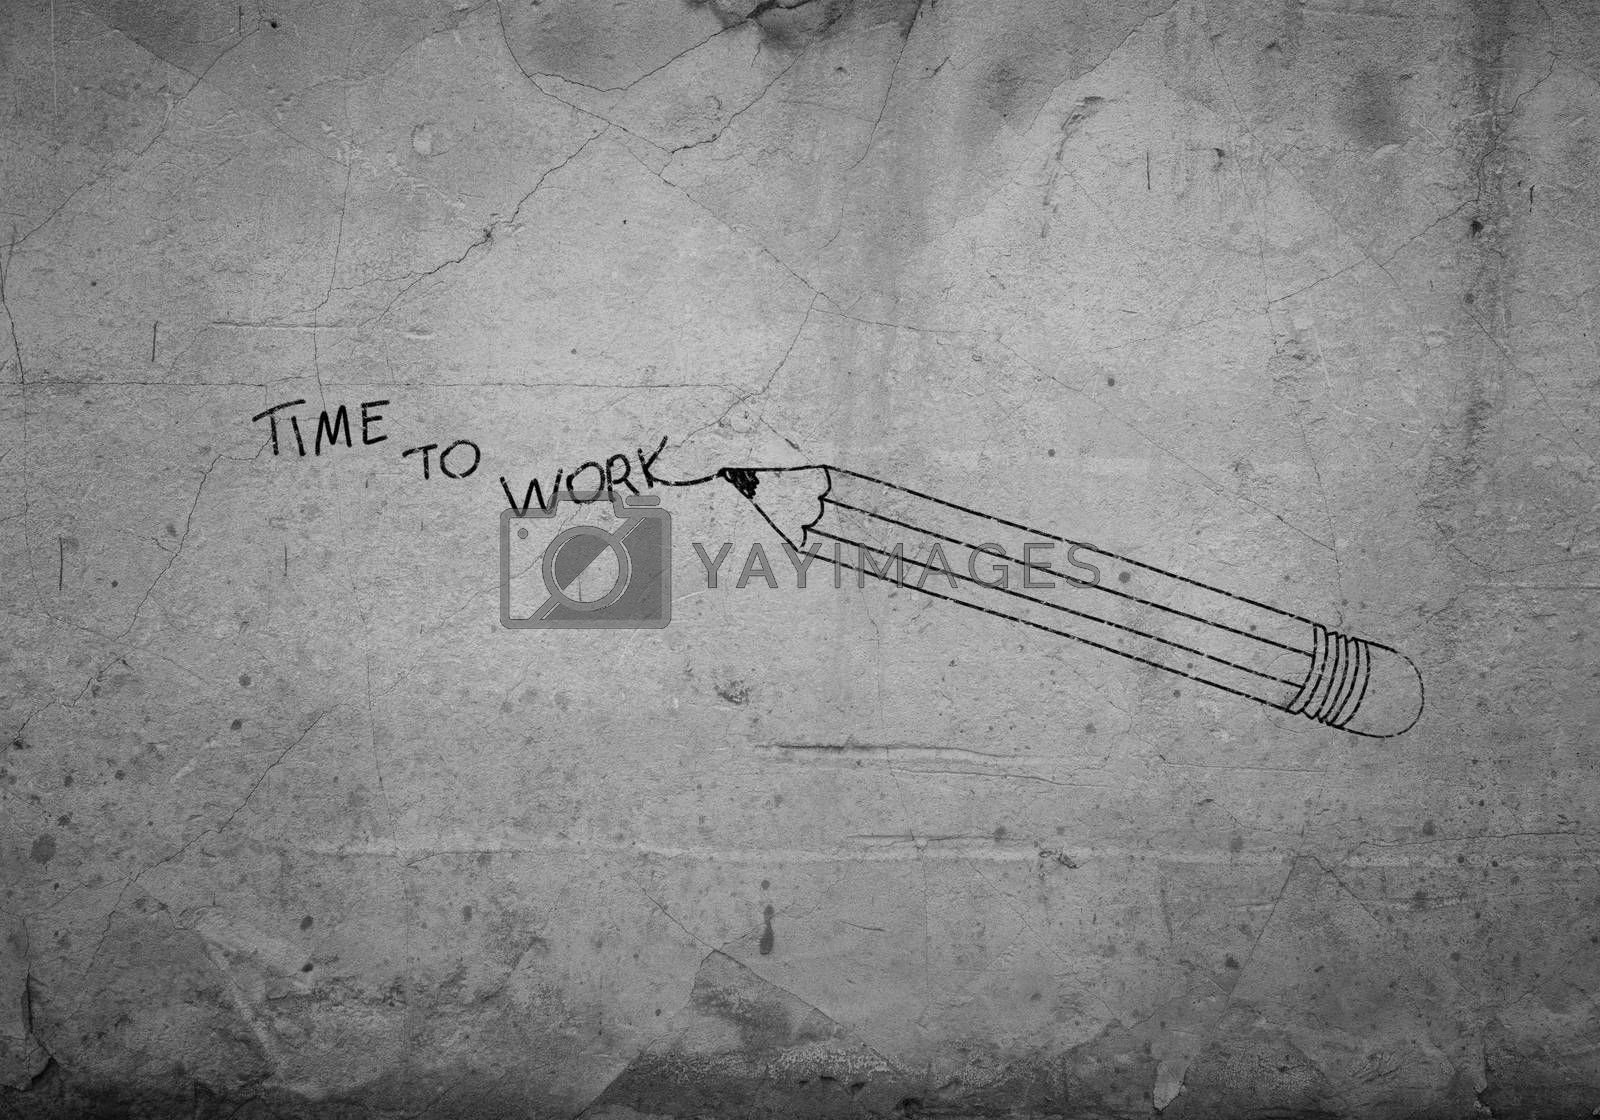 Background conceptual image with draw pencil on wall